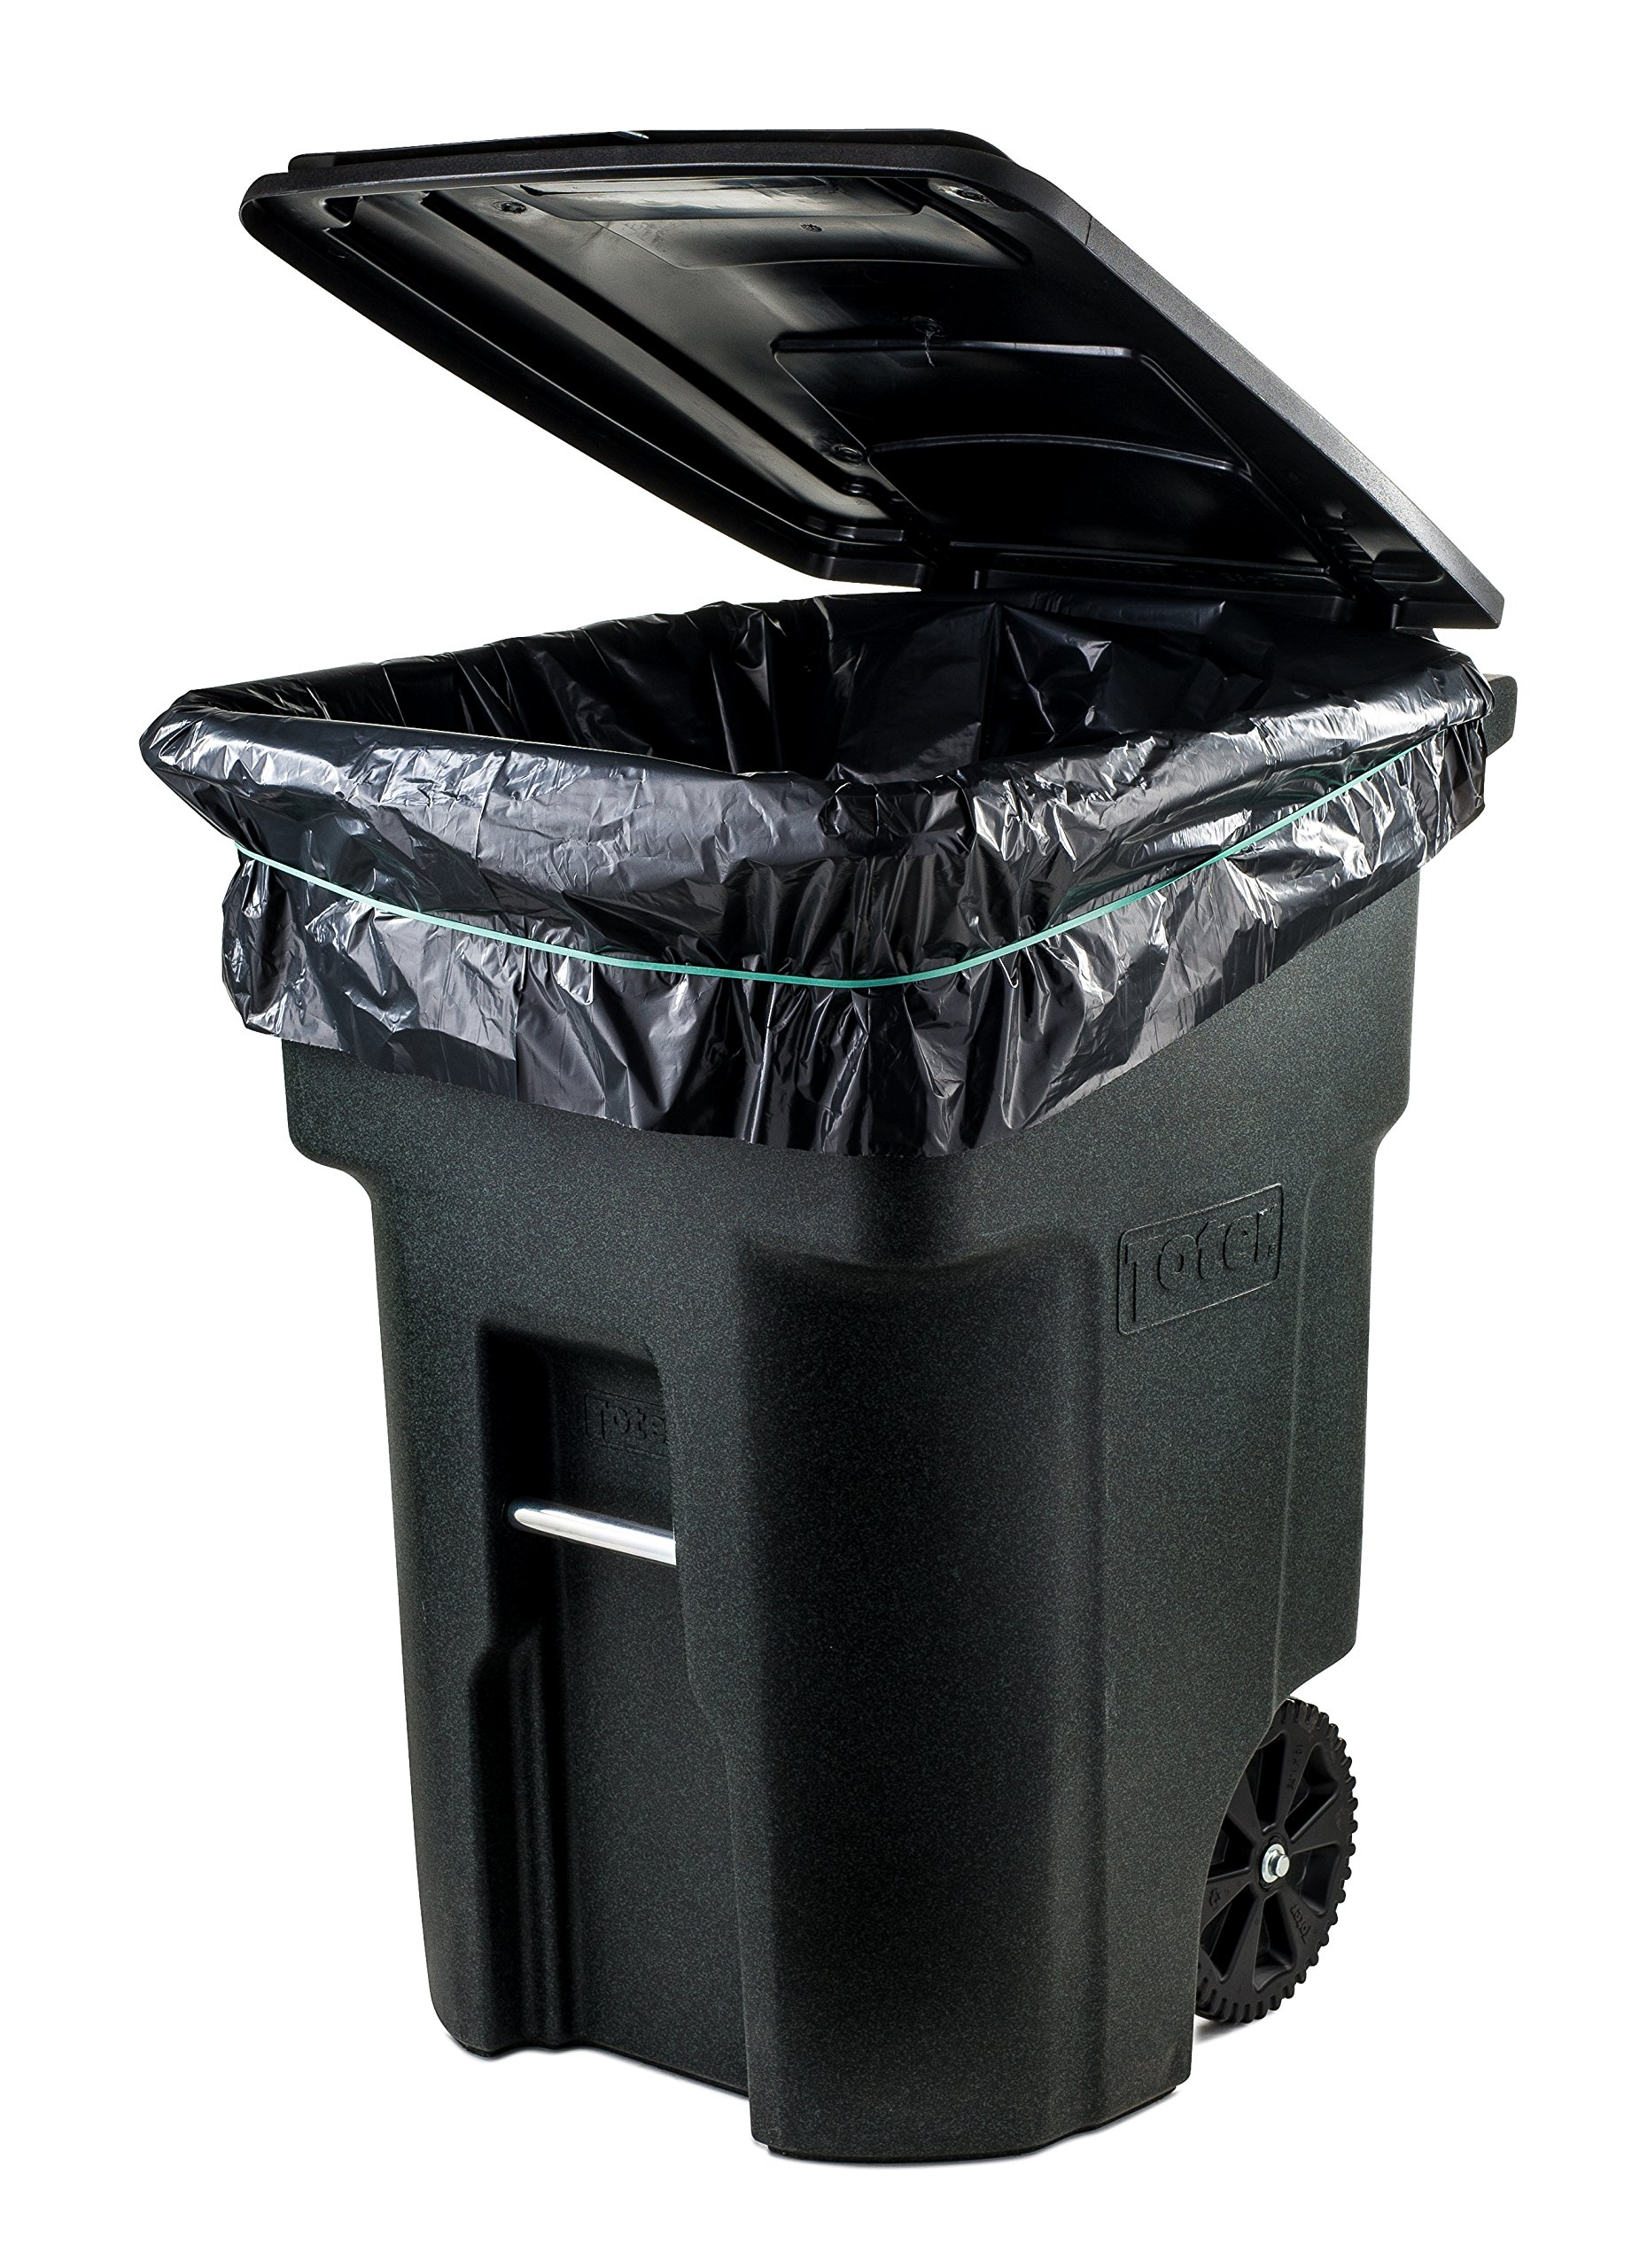 Plasticplace 95 Gal Trash bags, Black, 2 Mil, 61x68, 25 Bags per Case by Plasticplace (Image #2)